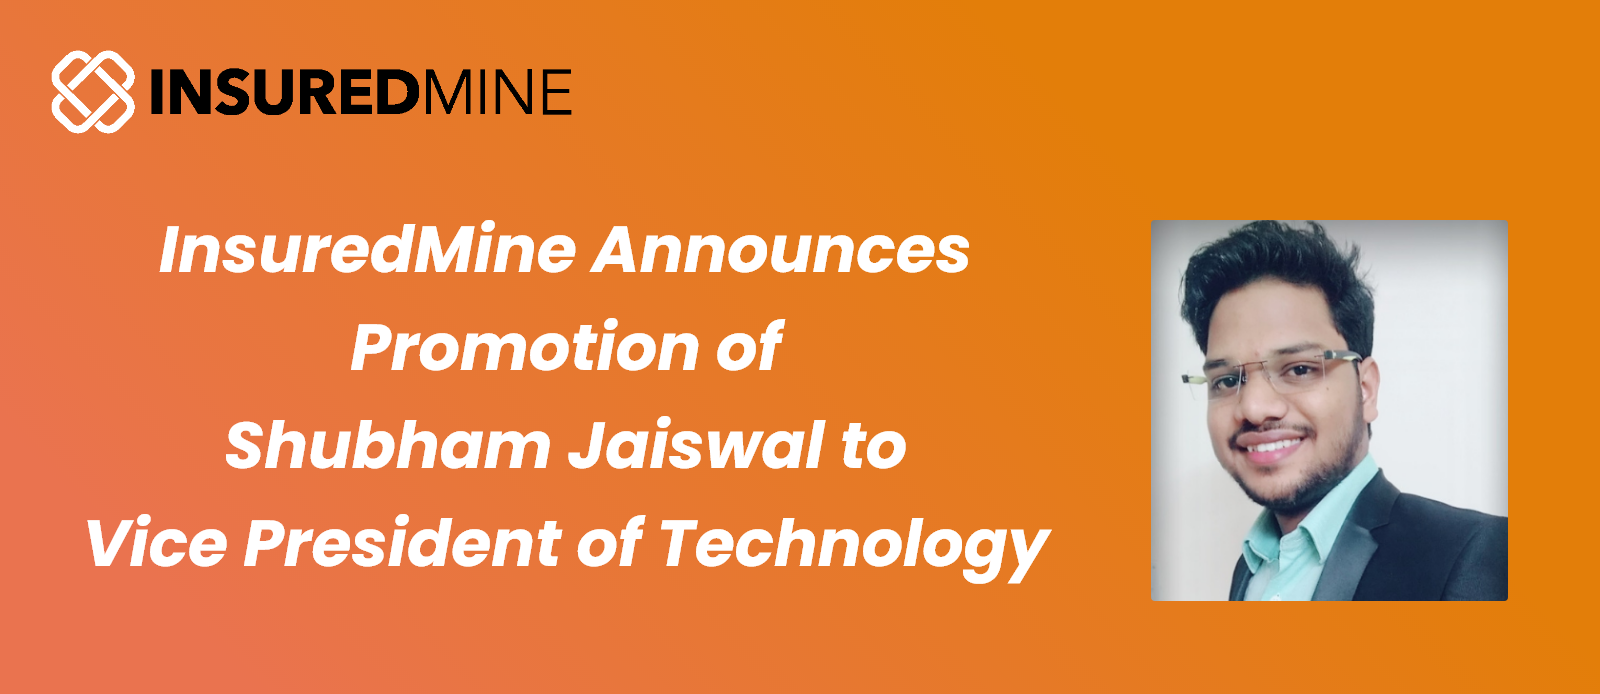 InsuredMine Announces Promotion of Shubham Jaiswal to Vice President of Technology